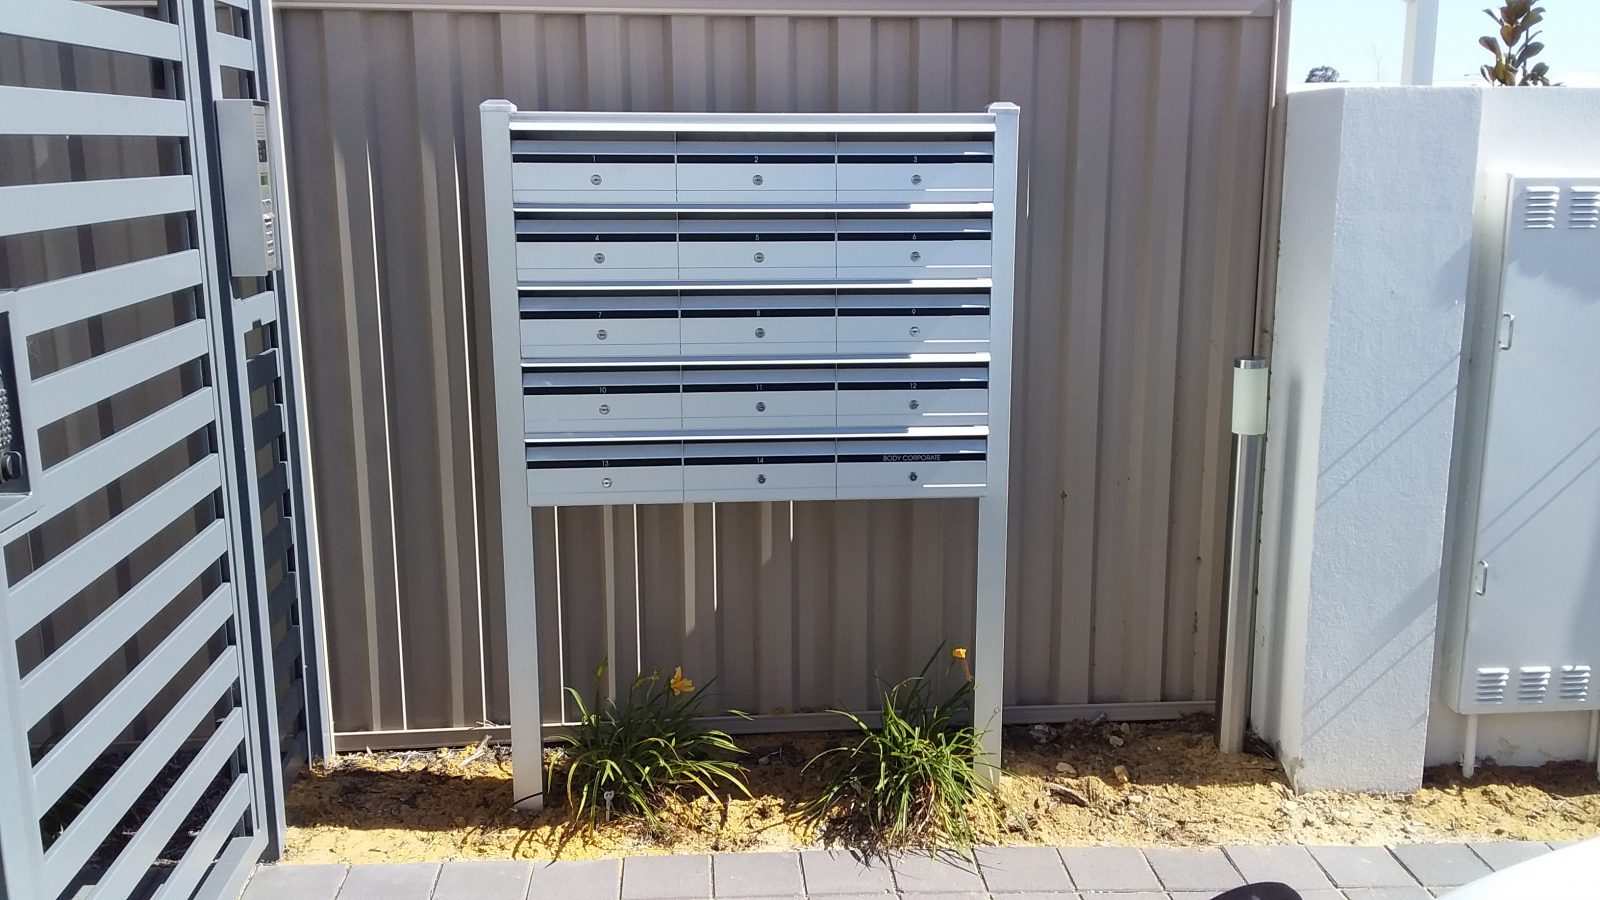 White letterbox cluster on posts